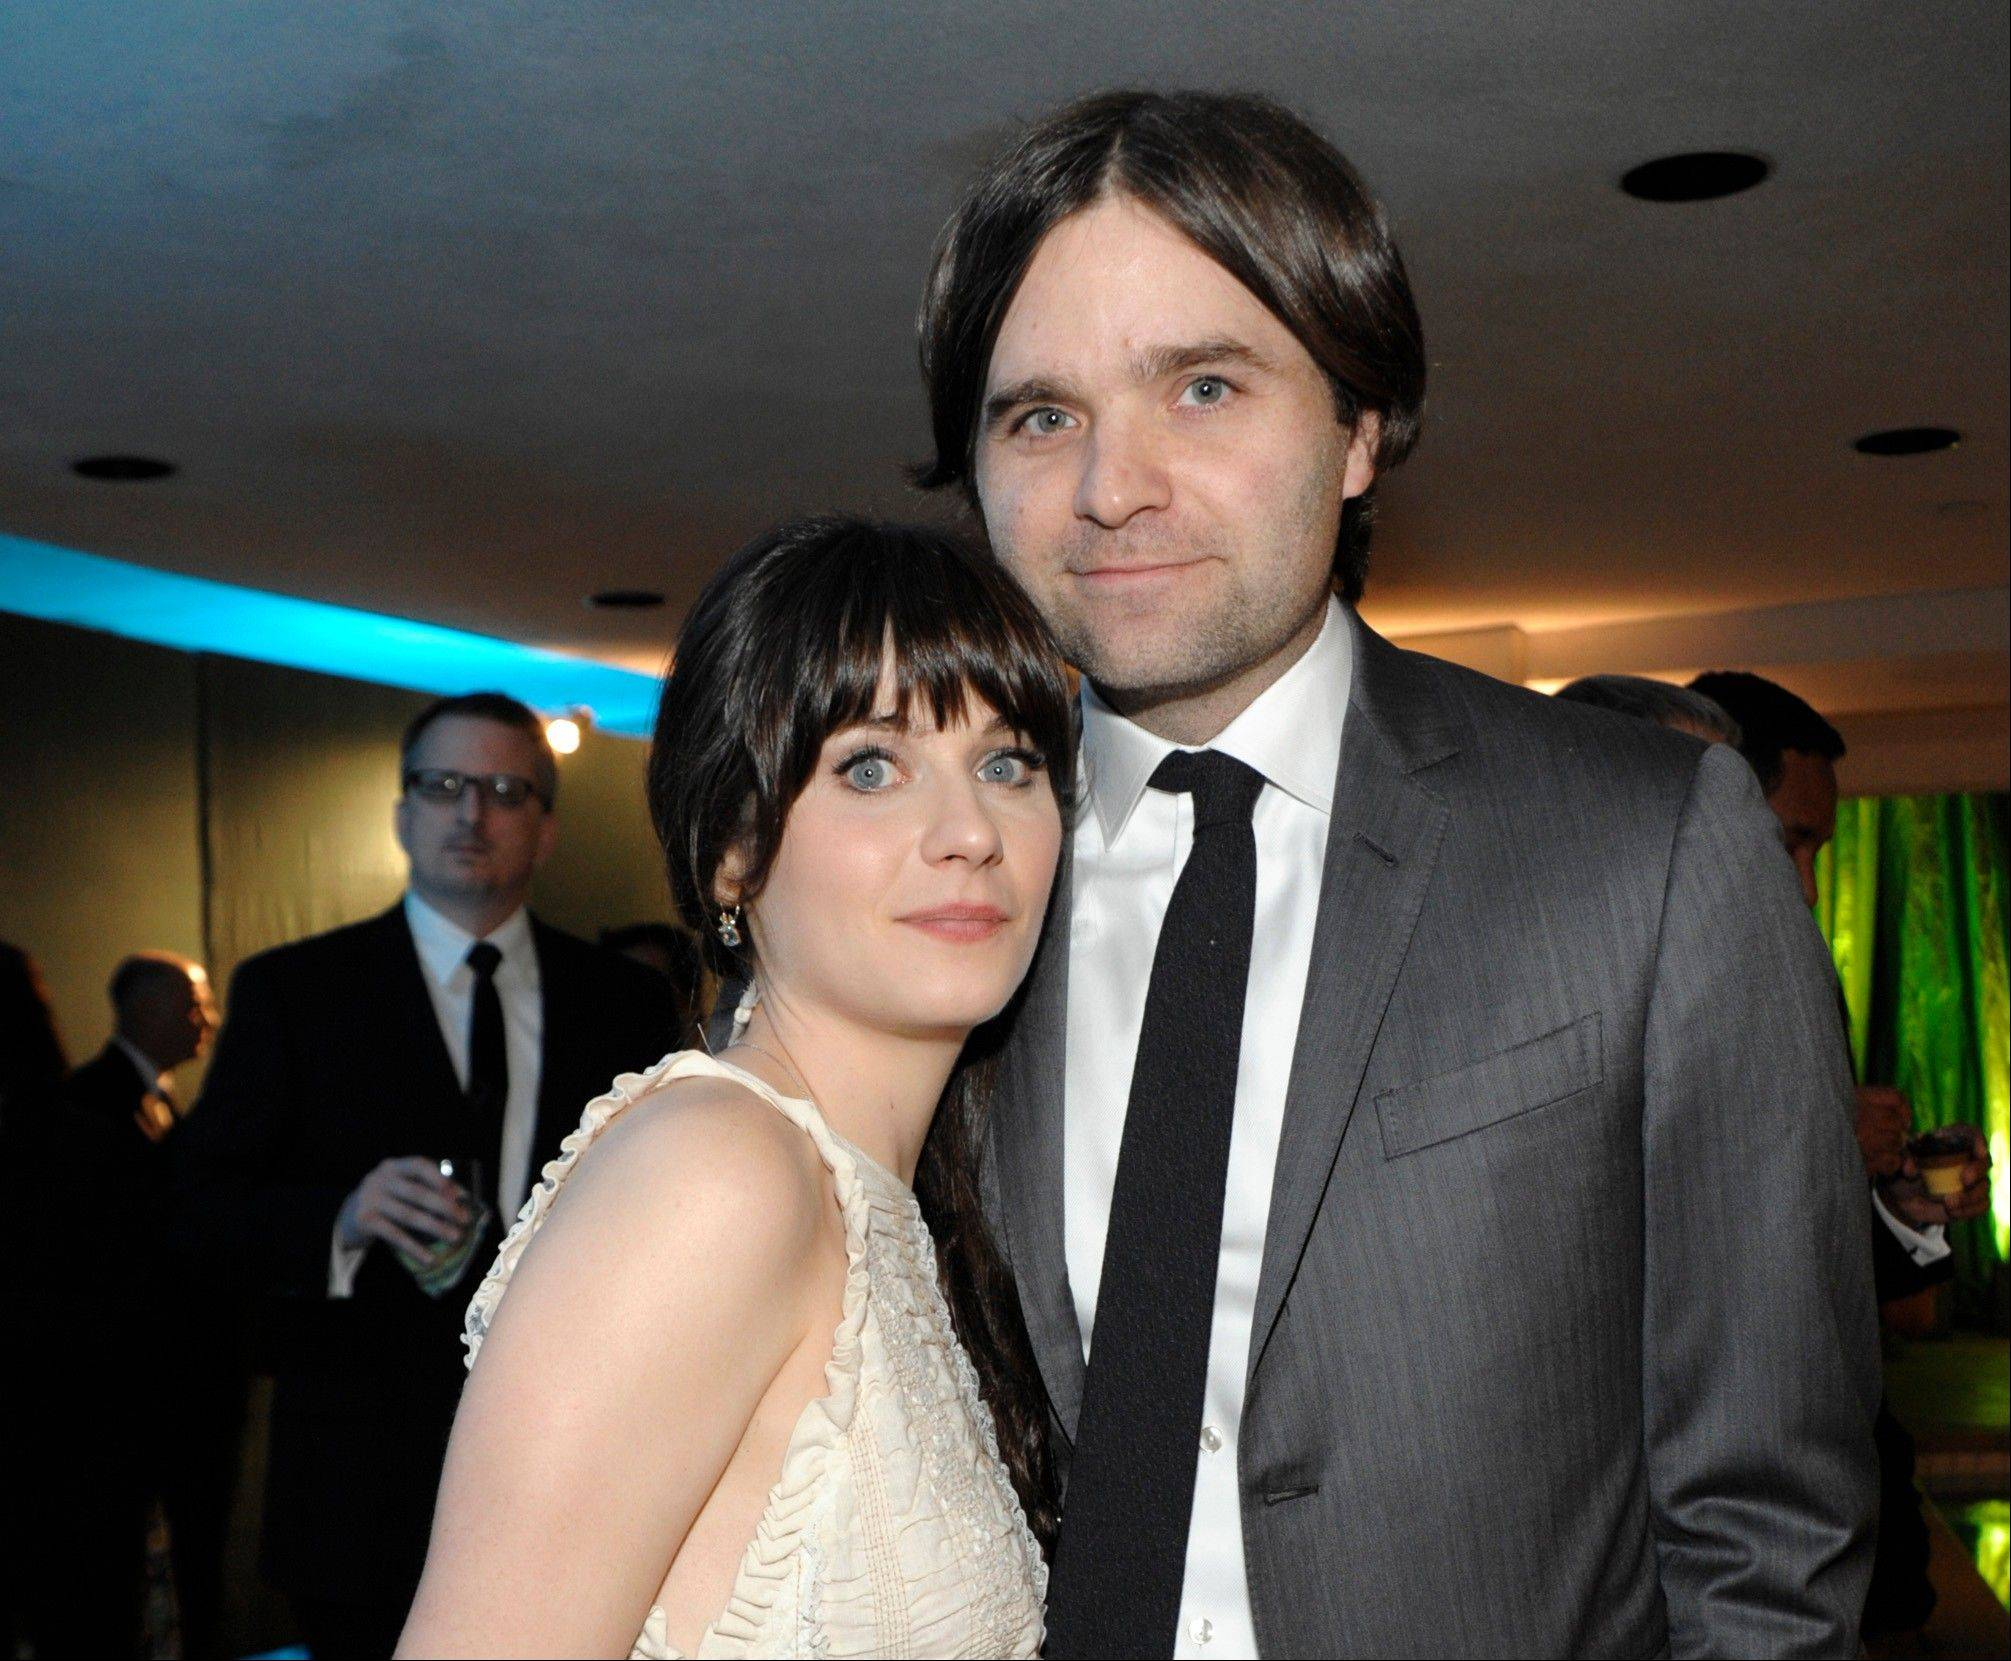 Court records show a Los Angeles judge finalized Zooey Deschanel and Ben Gibbard�s divorce on Wednesday.